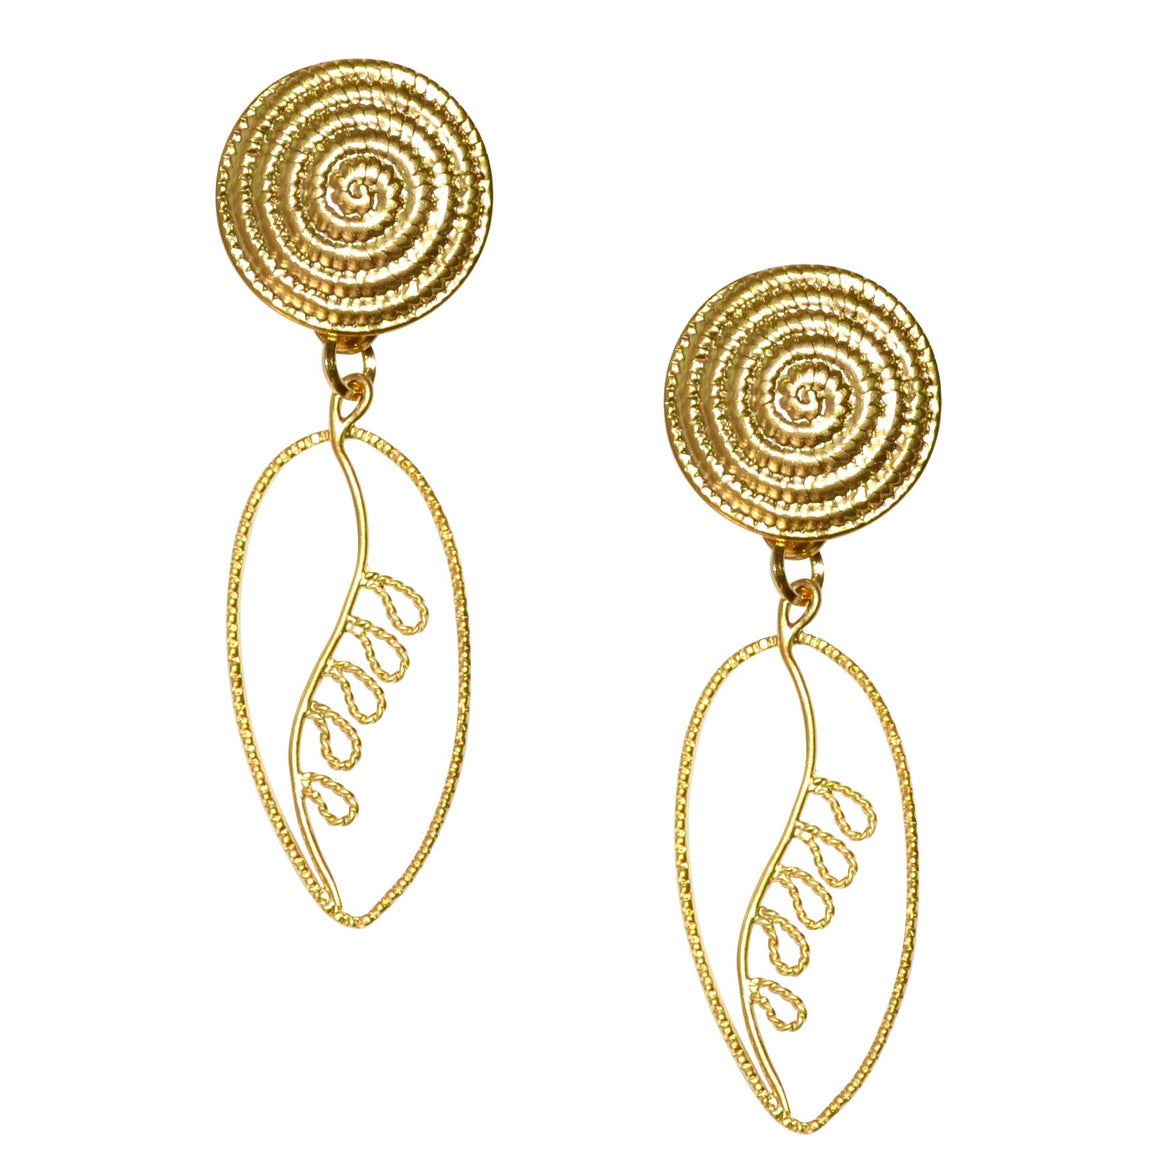 DESSA OVAL ROPE DANGLE EARRING WITH SWIRL POST